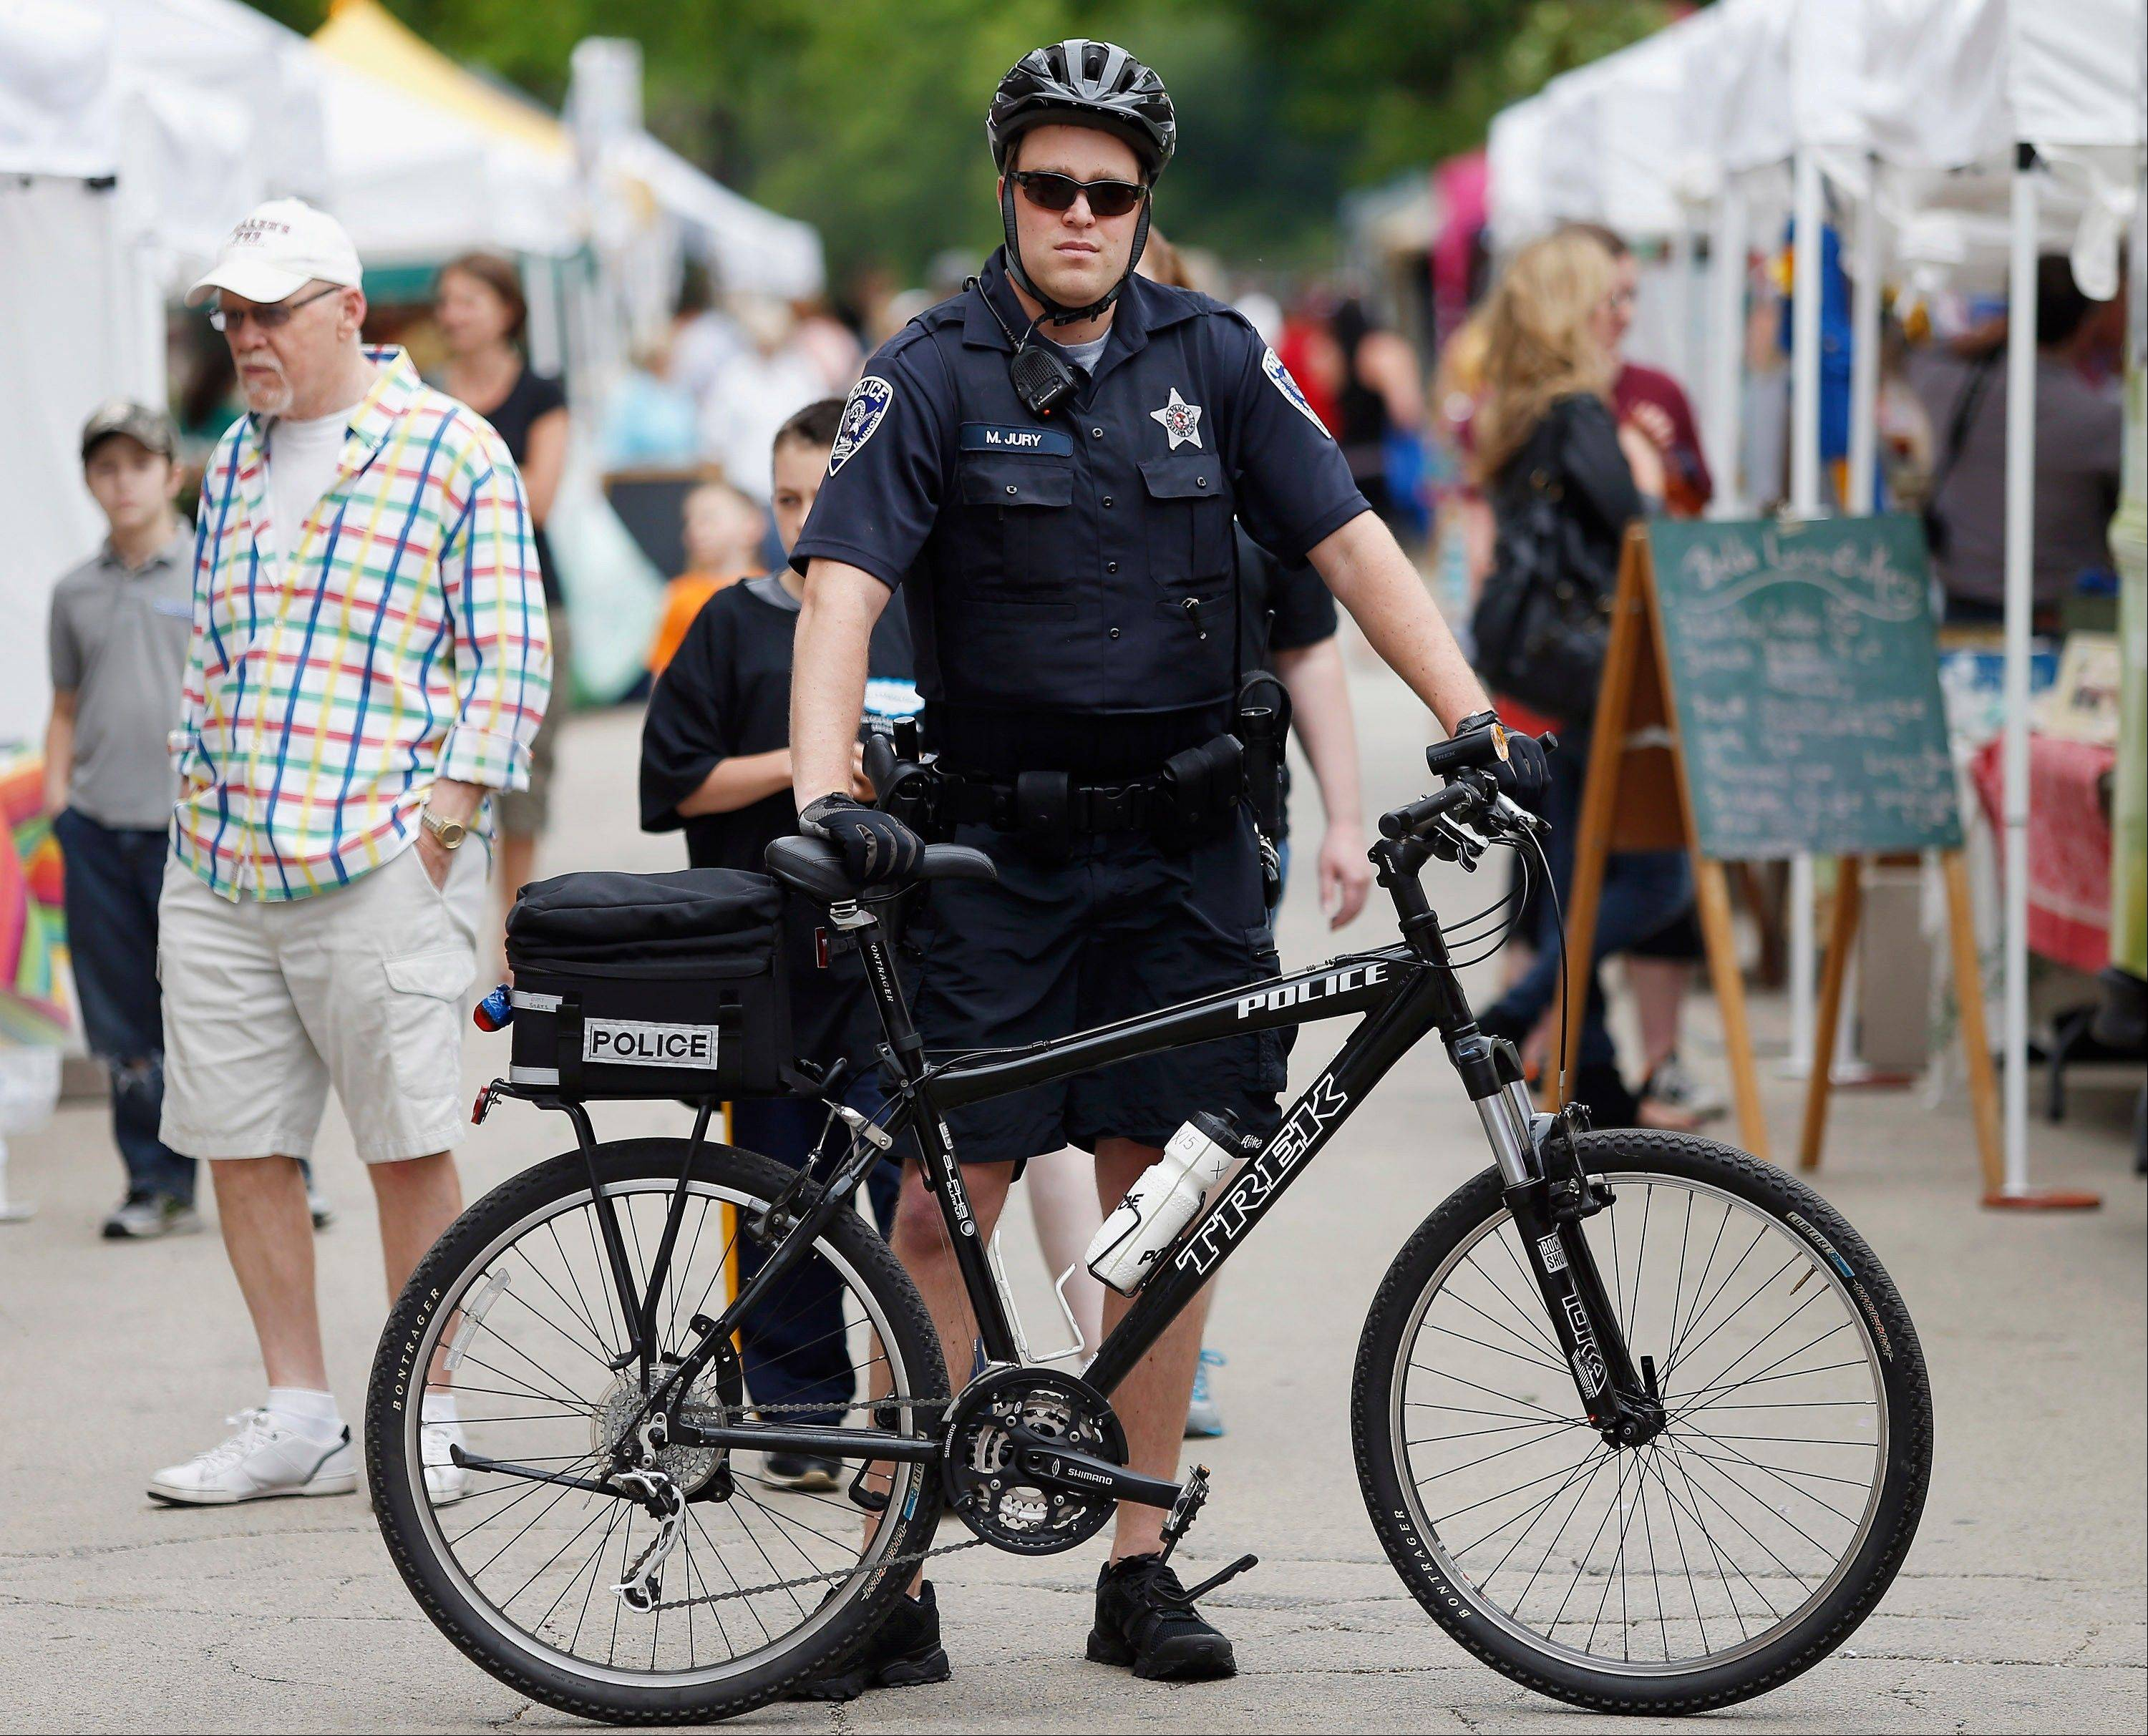 Associated PressRockford Police Officer Mike Jury stands with his bike at the entrance of the City Market in downtown Rockford.